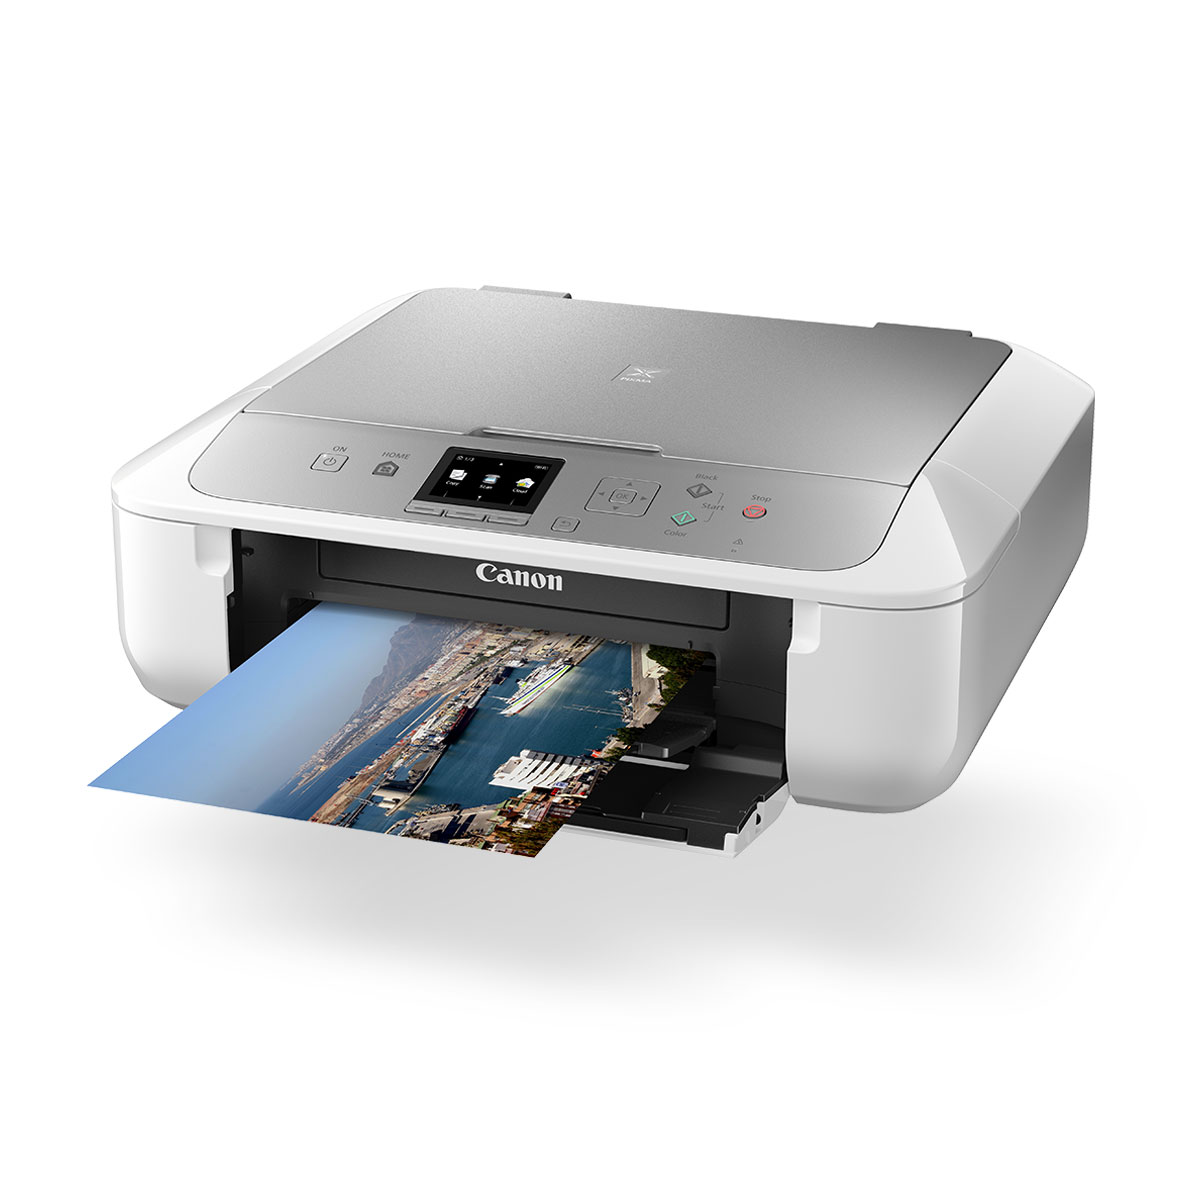 Canon PIXMA MG5765 Inkjet All-in-One printer white and silver front angled with paper